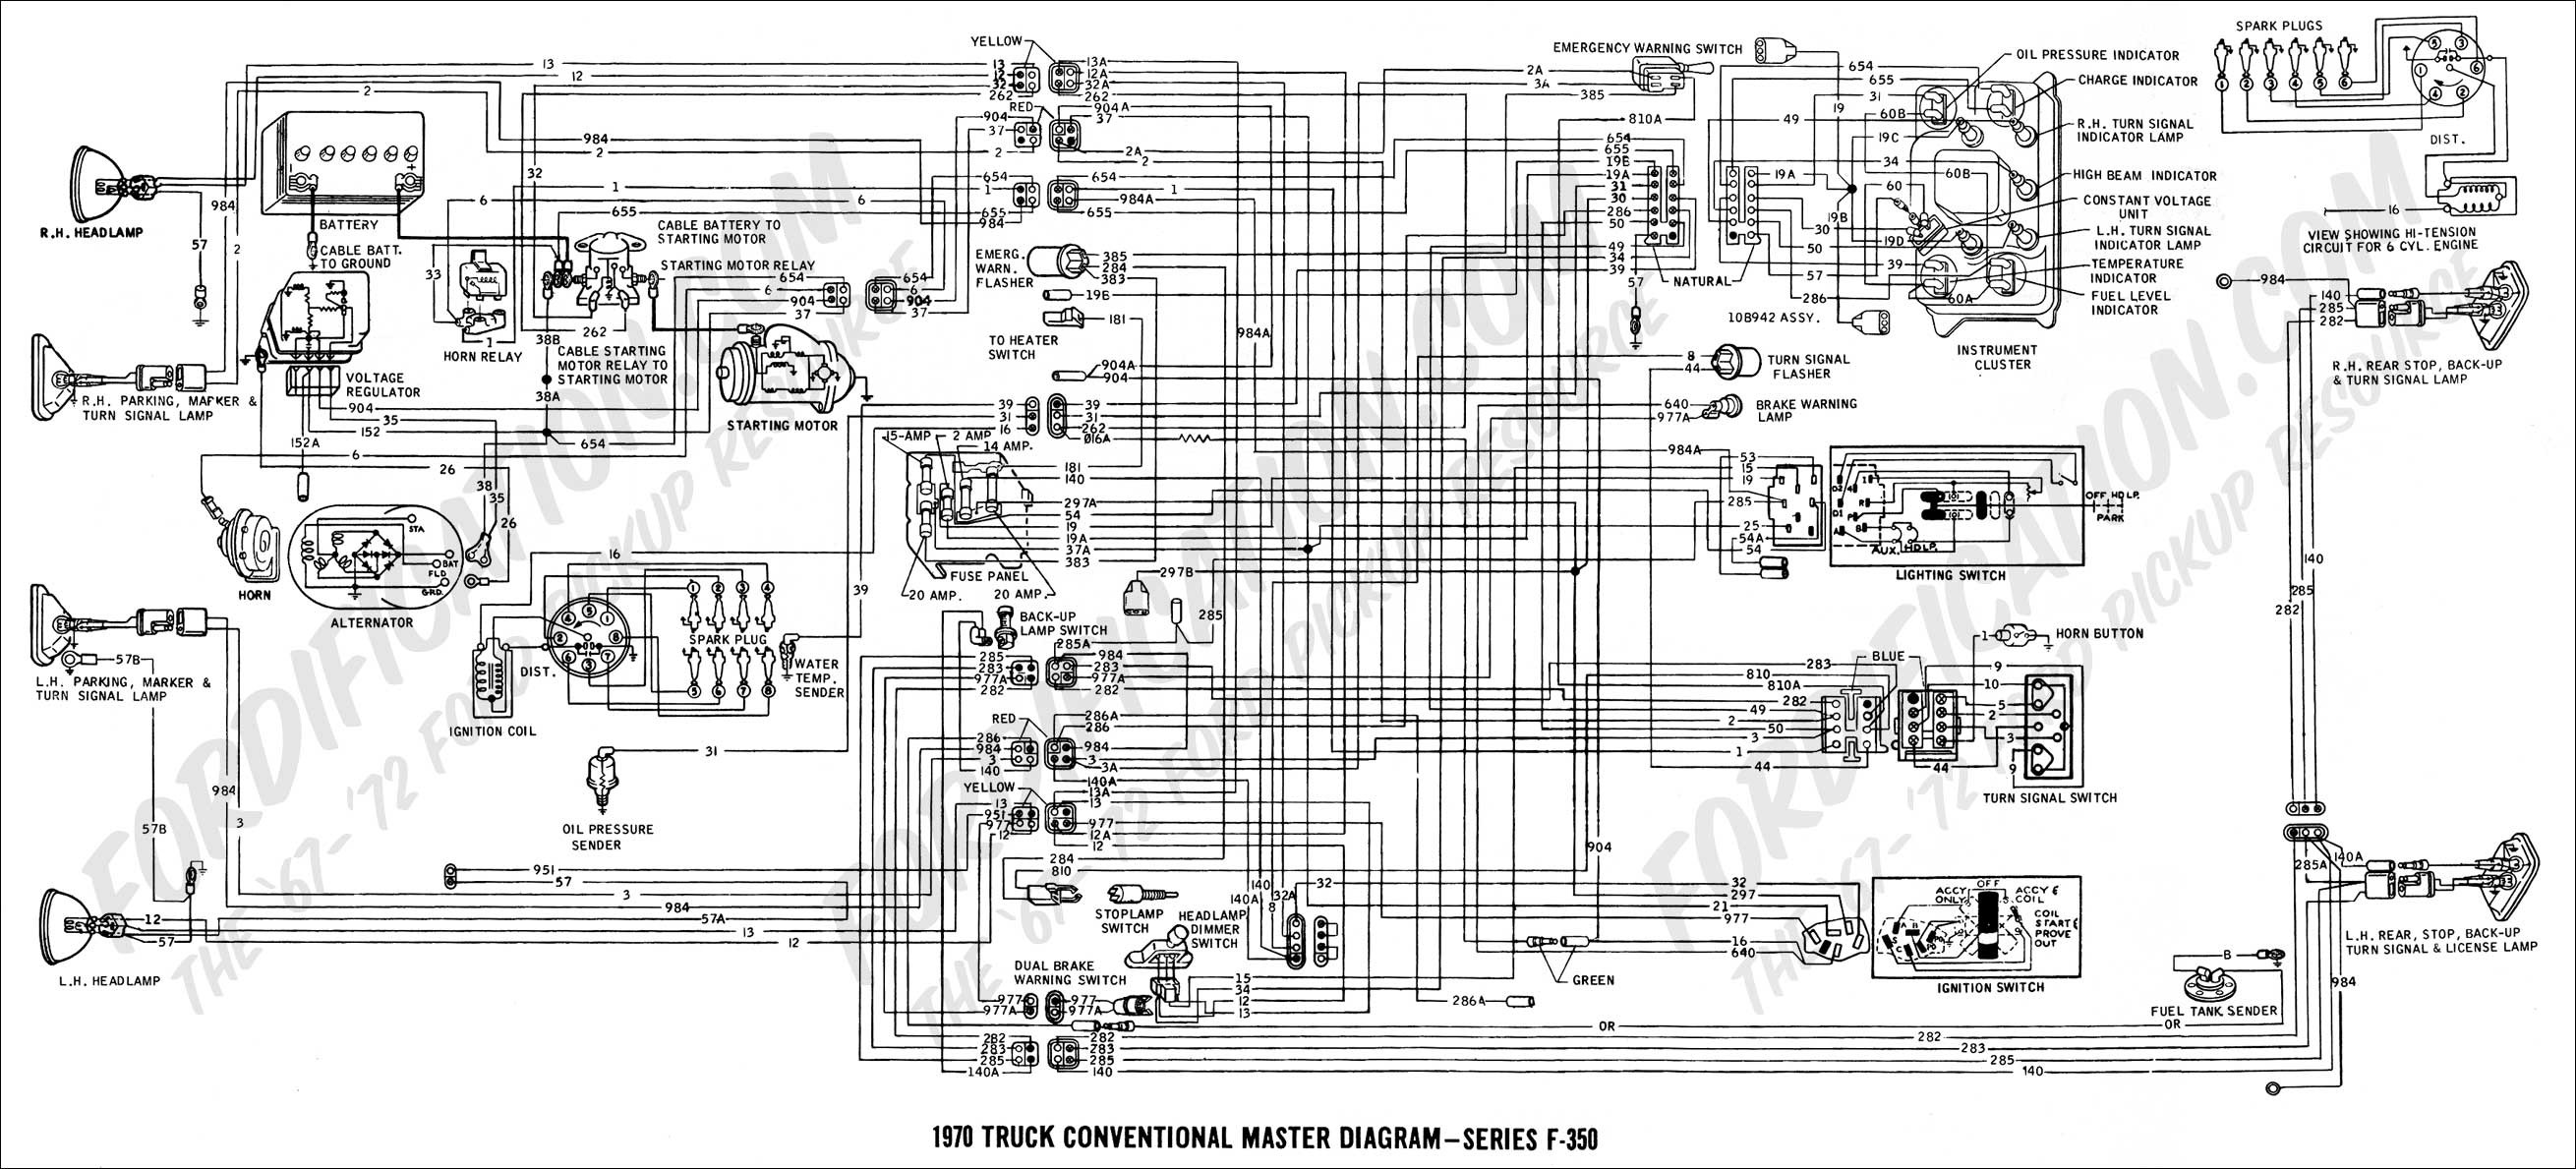 2007 ford Escape Engine Diagram 2006 ford Ranger Wiring Diagram 3 Wiring  Diagram Of 2007 ford